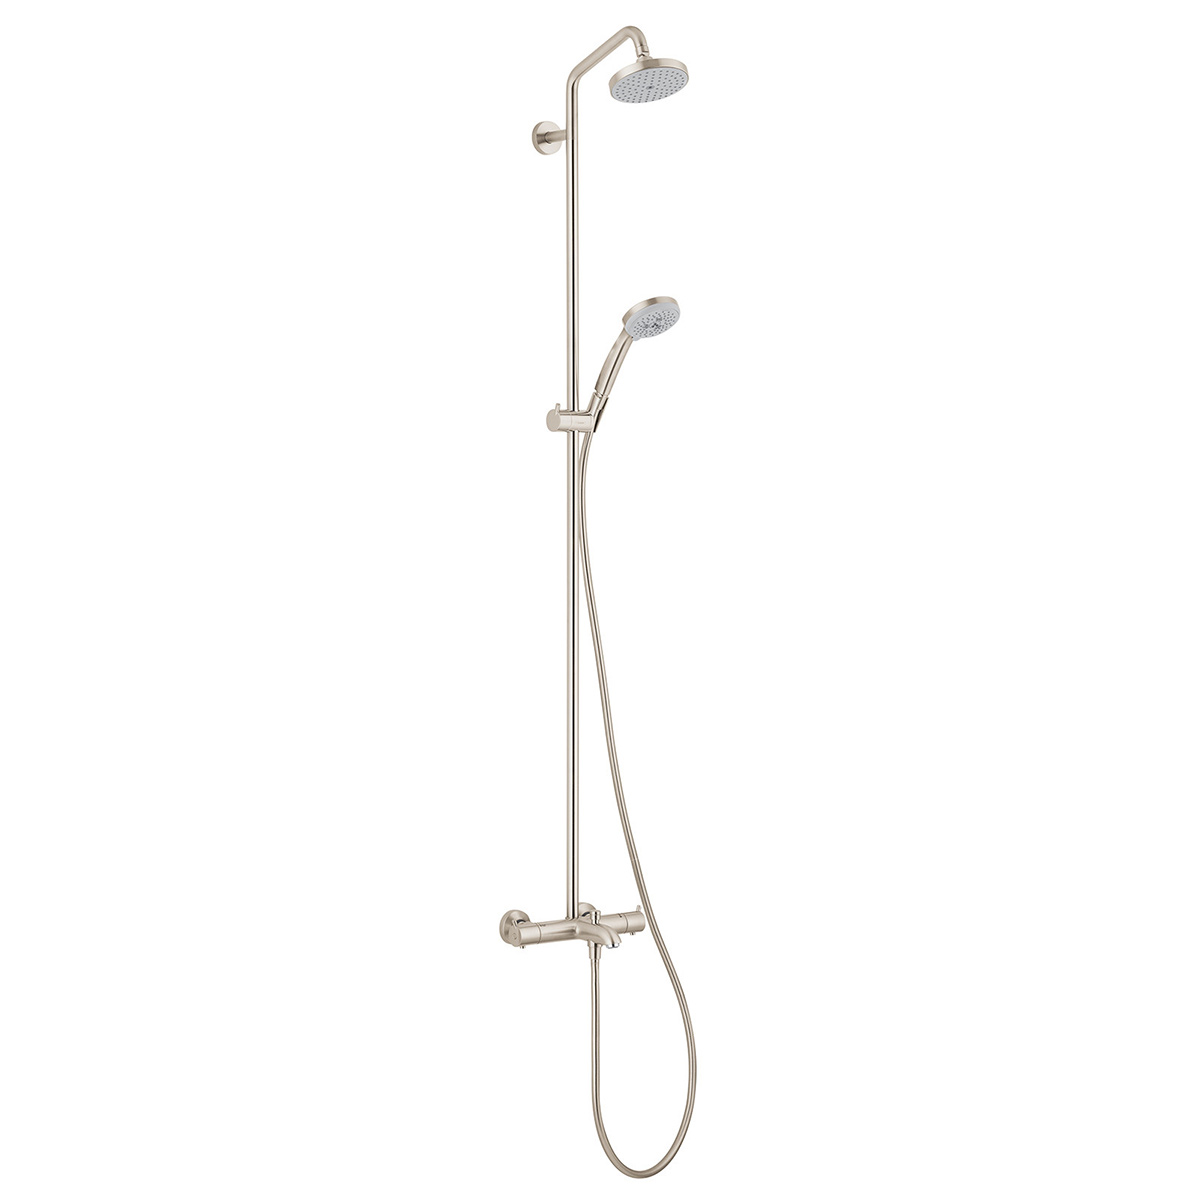 Bath4All - Hansgrohe 27143821 Brushed Nickel Croma Green Showerpipe ...